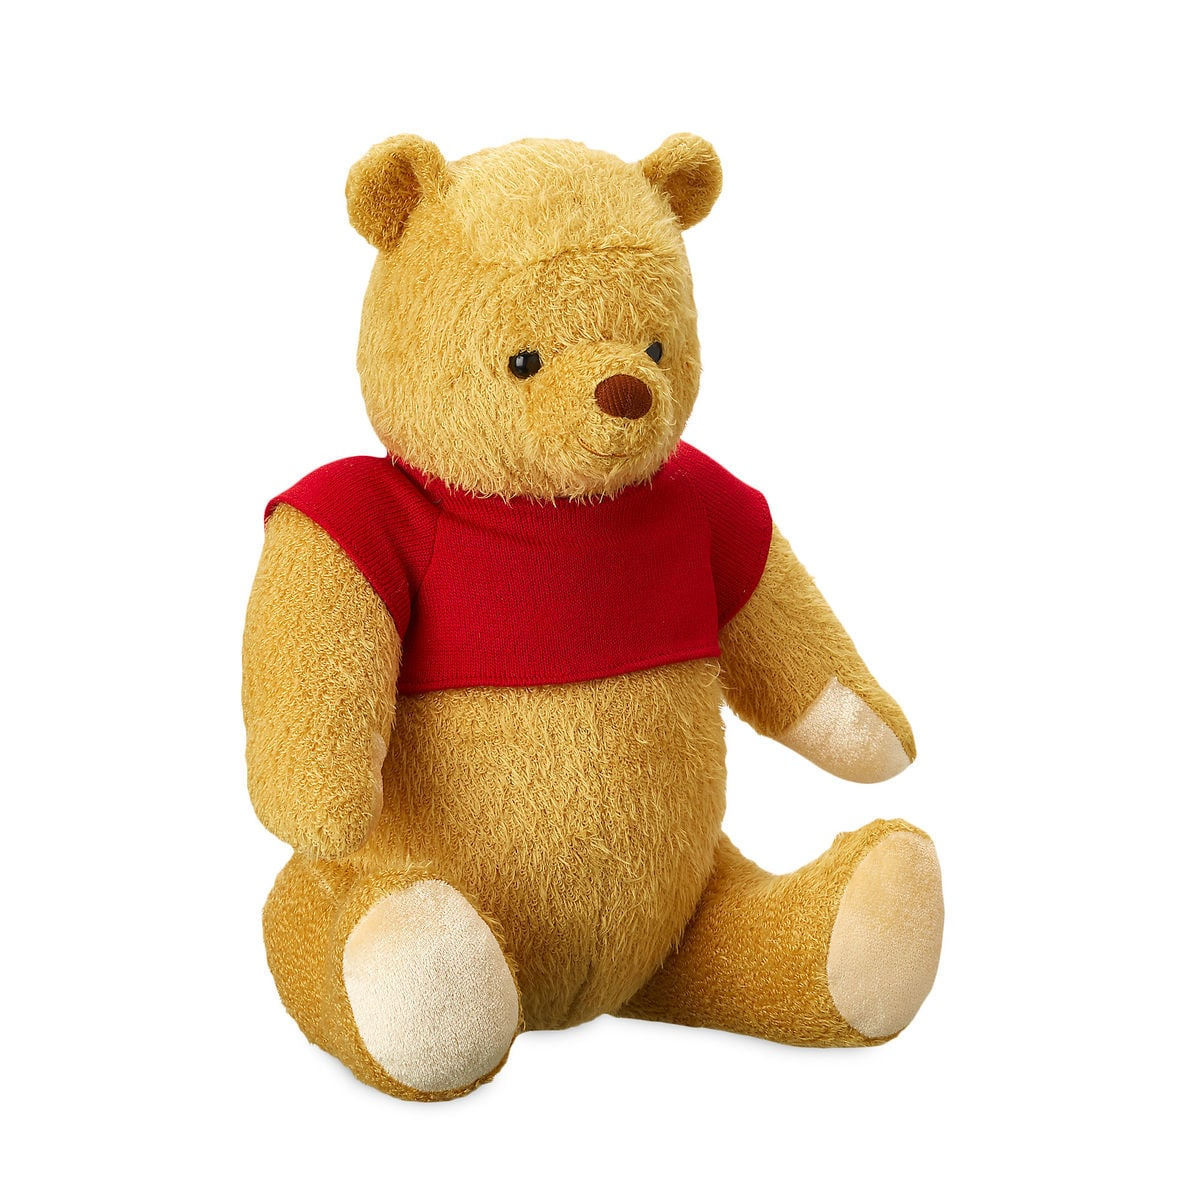 Product Image of Winnie the Pooh Plush - Christopher Robin - Medium   1 c885056866